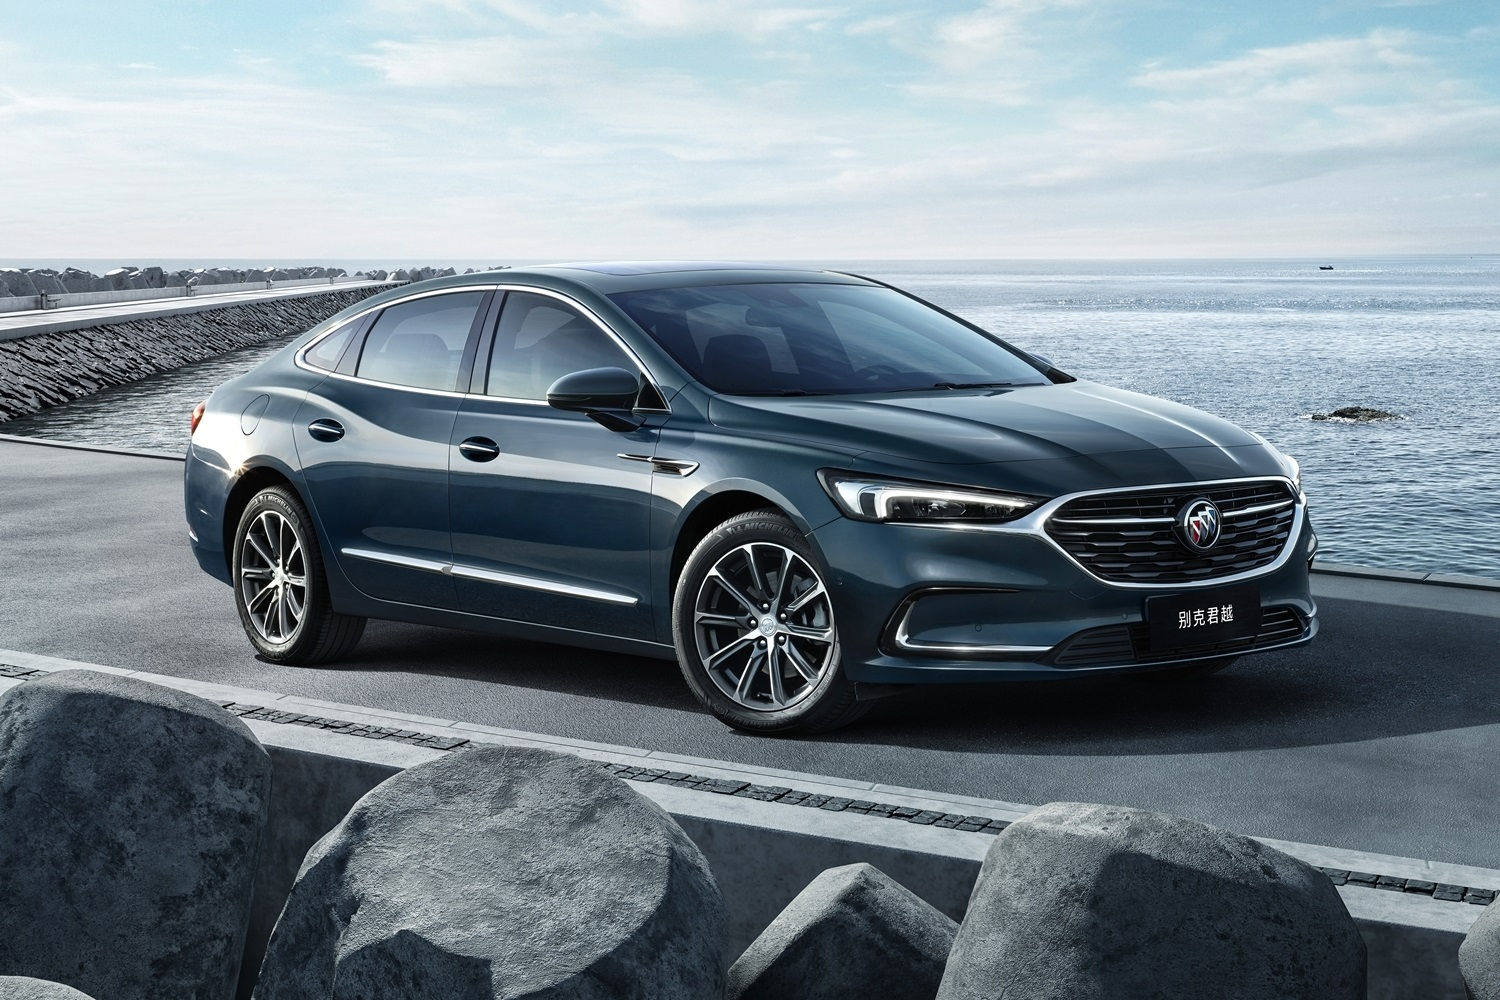 2021 Buick Lacrosse Gets More Refined Than Ever | Gm Authority New 2021 Buick Regal Discontinued, Release Date, Engine